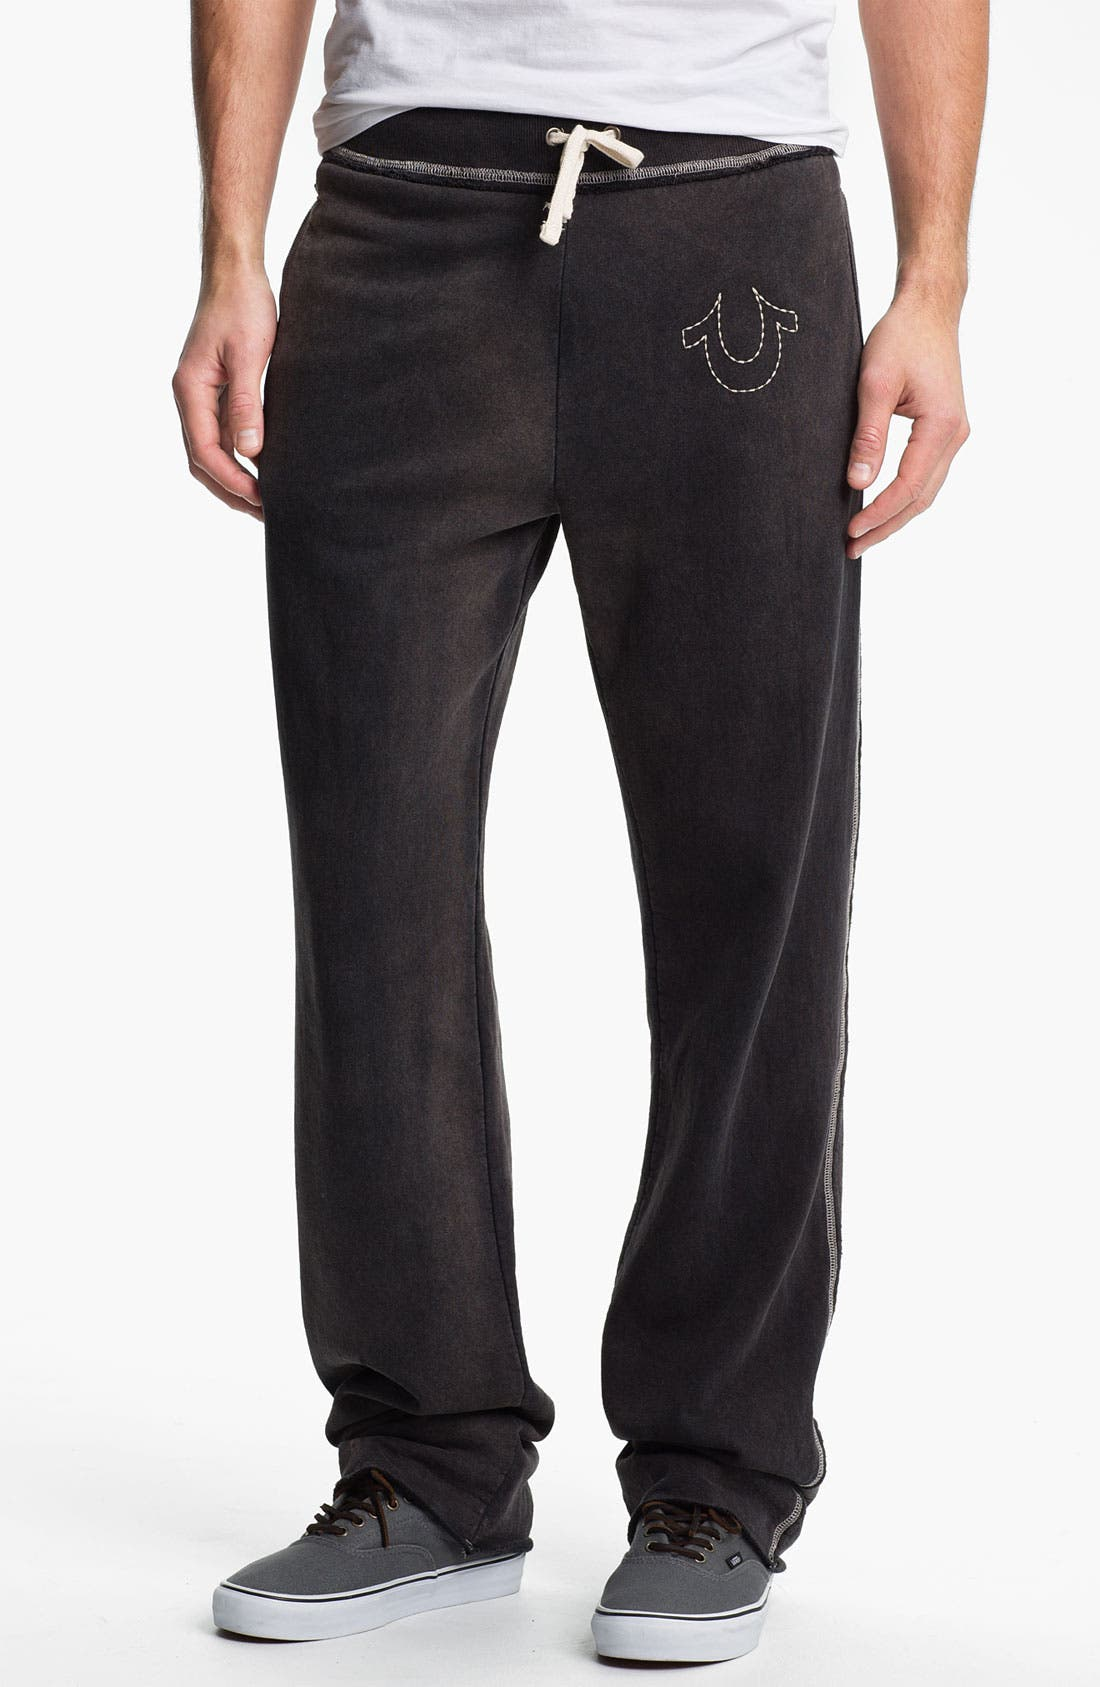 Alternate Image 1 Selected - True Religion Brand Jeans 'Built to Last' Athletic Pants